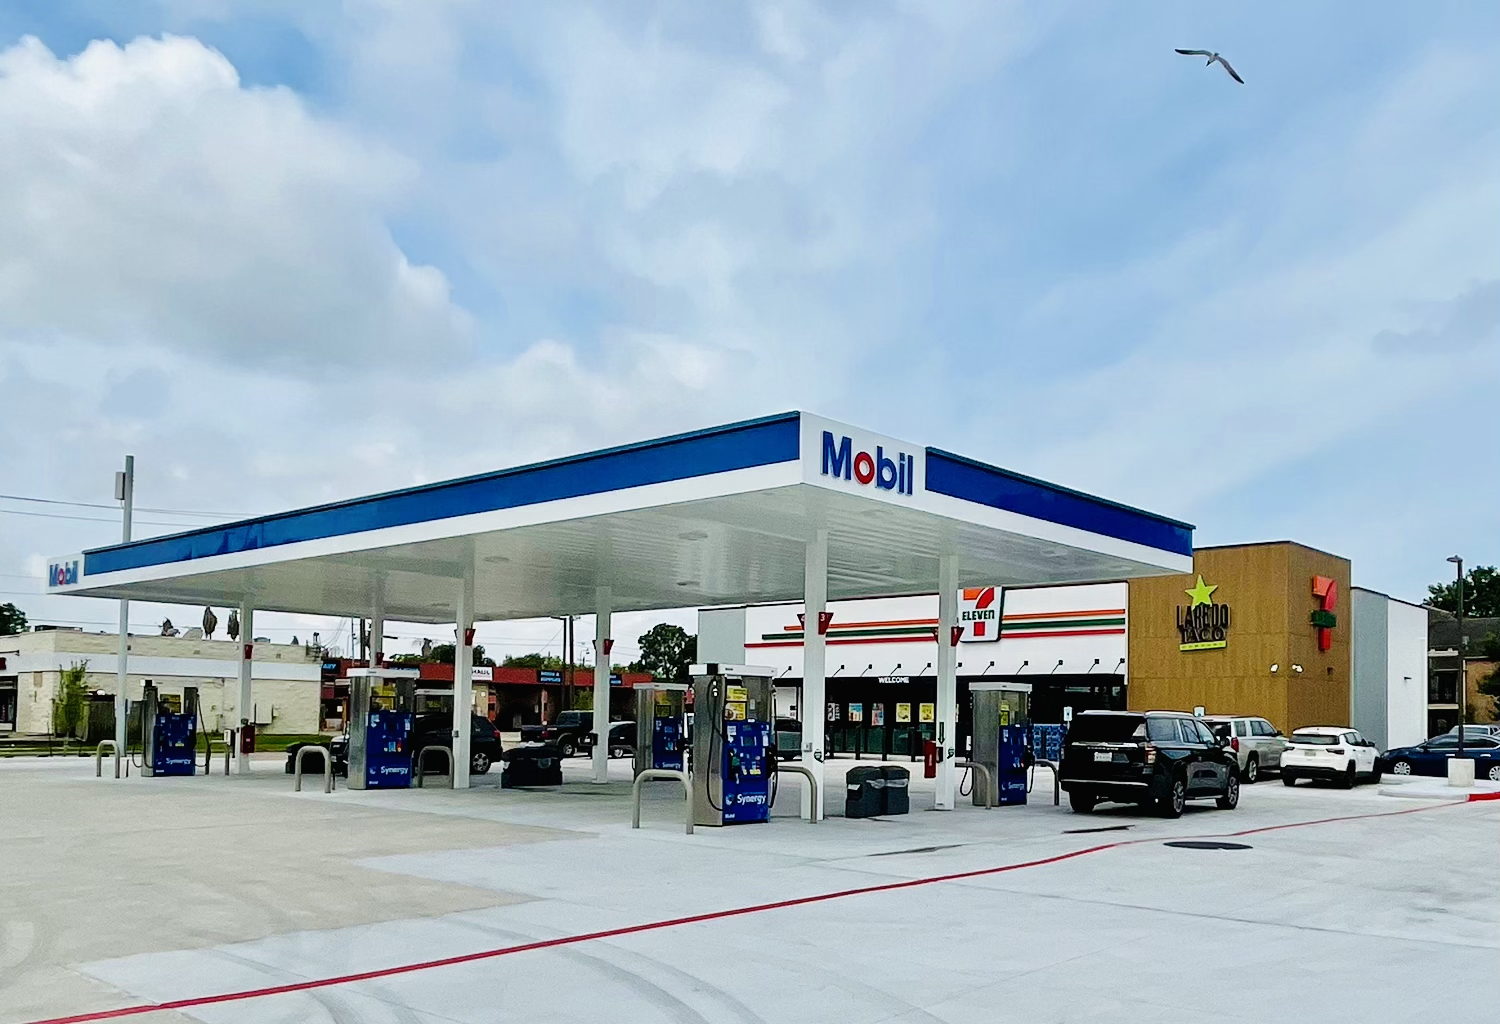 RealSource Sells New Construction, Single-Tenant 7-Eleven with Fuel Station and Laredo Taco Company in Houston